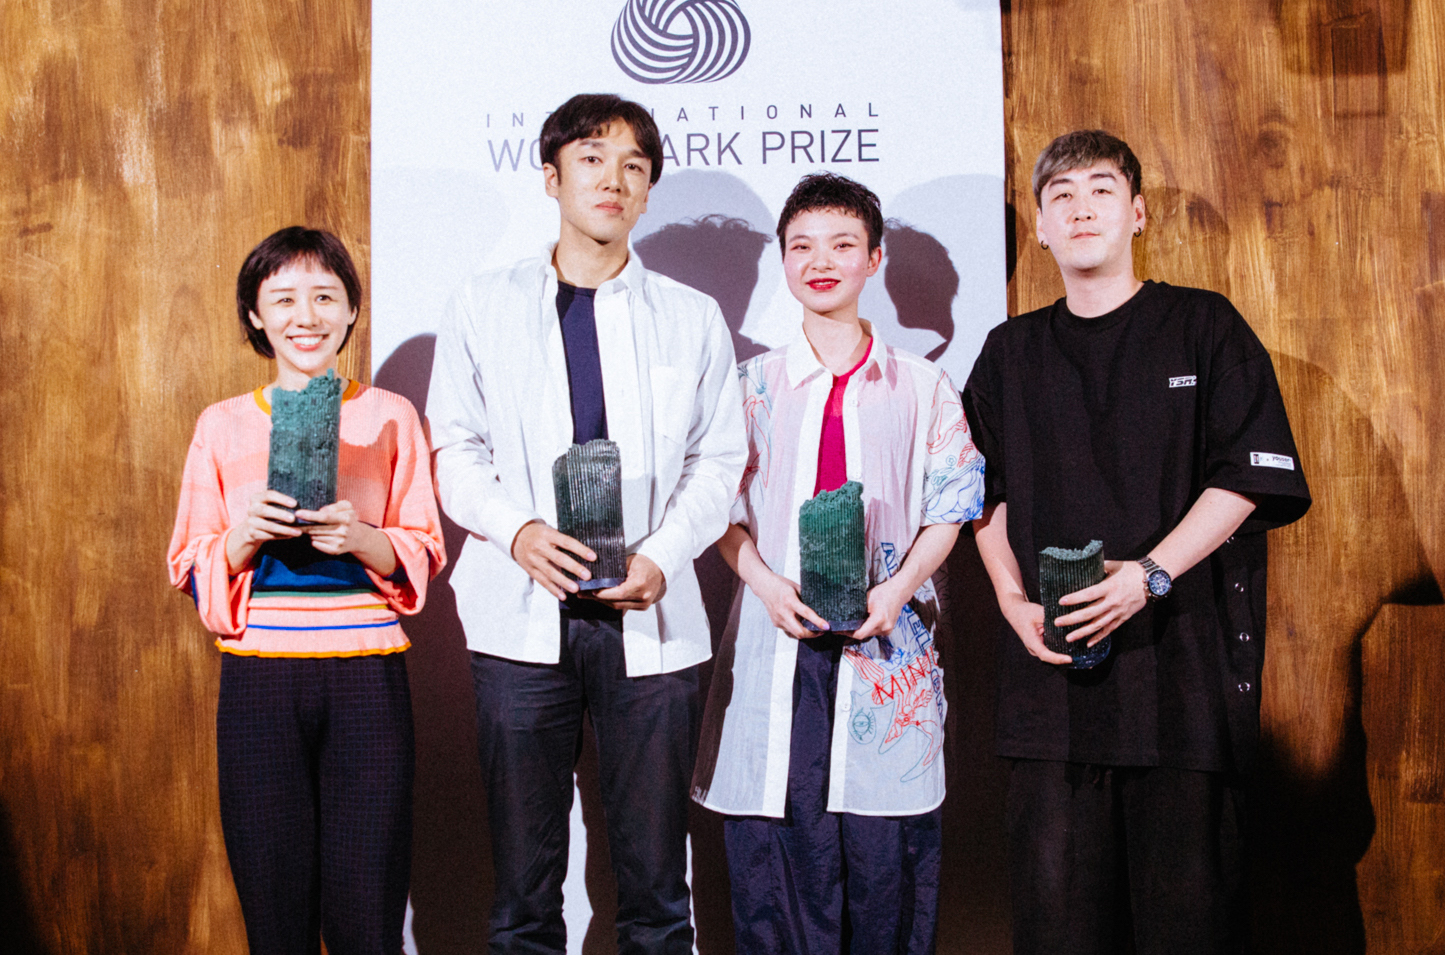 The Asian semifinalists of the International Woolmark Prize 2018.